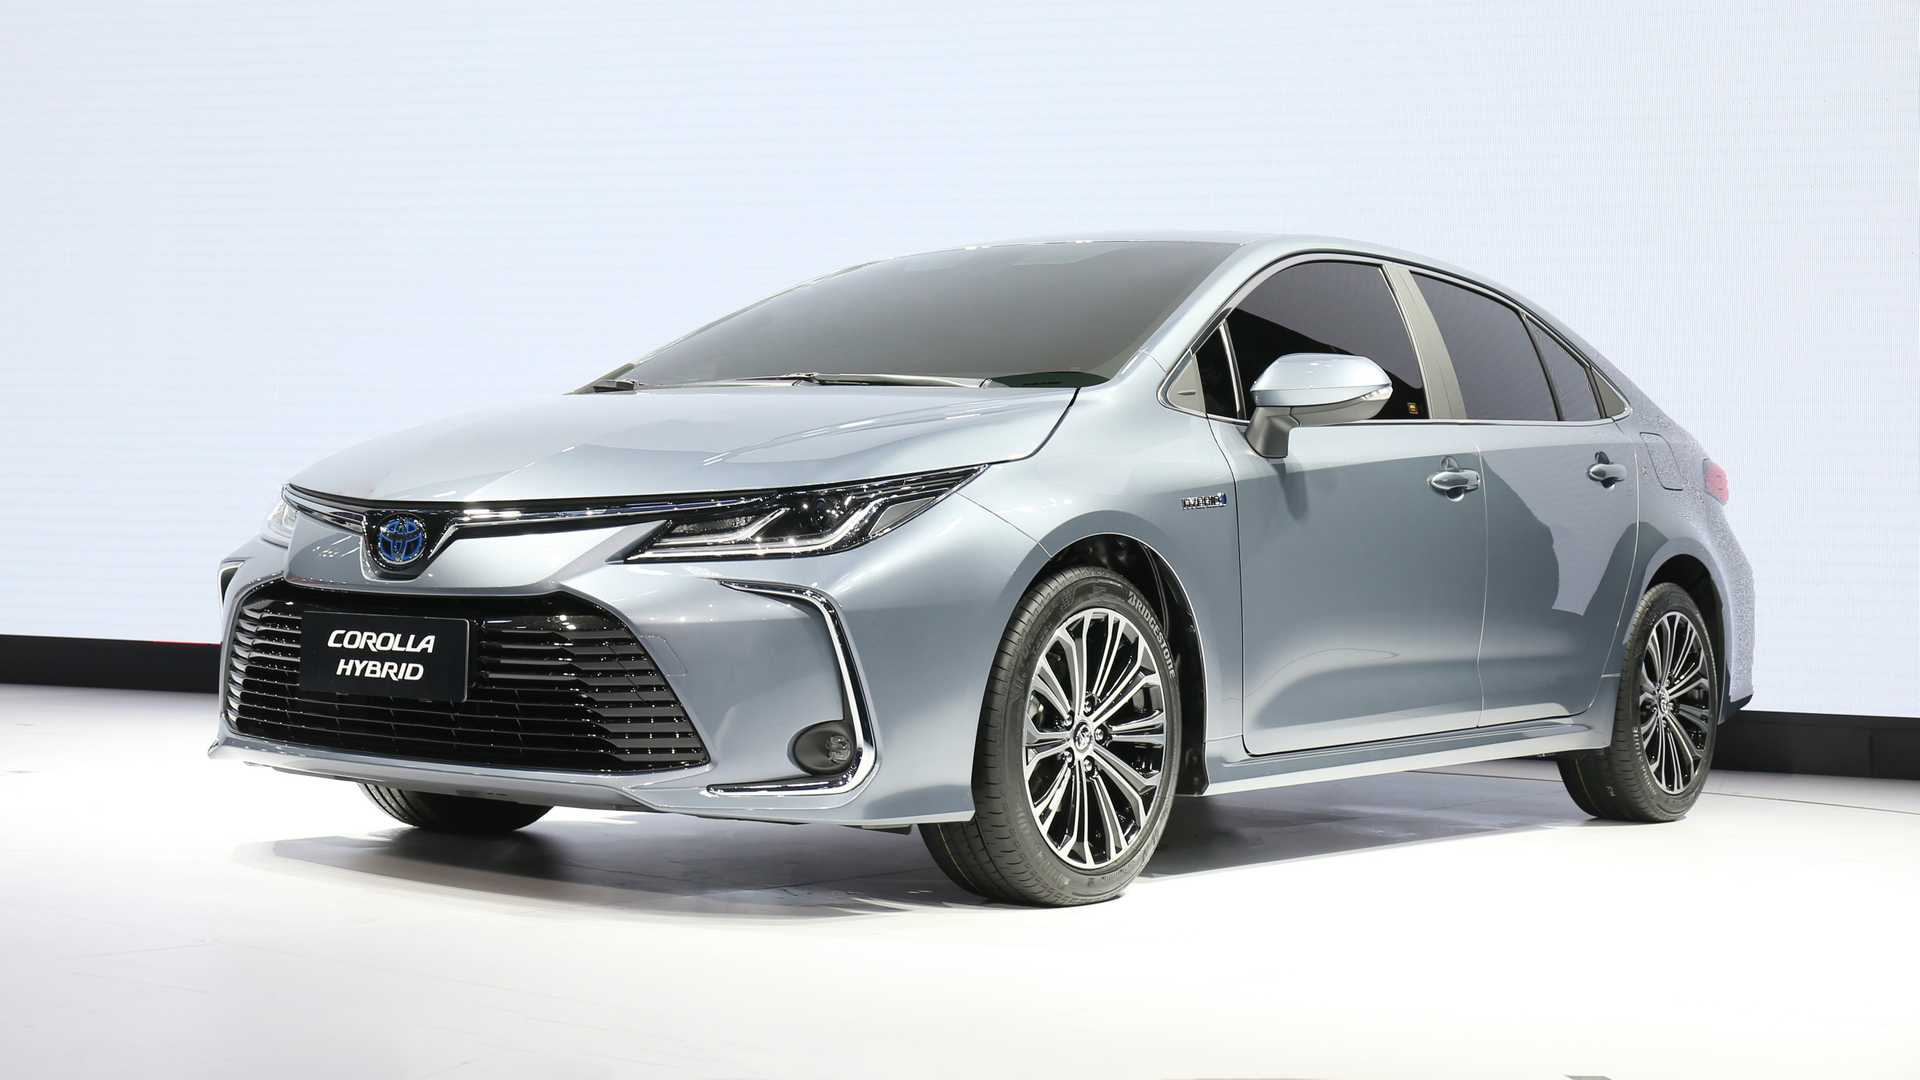 89 All New Toyota Gli 2020 Concept with Toyota Gli 2020